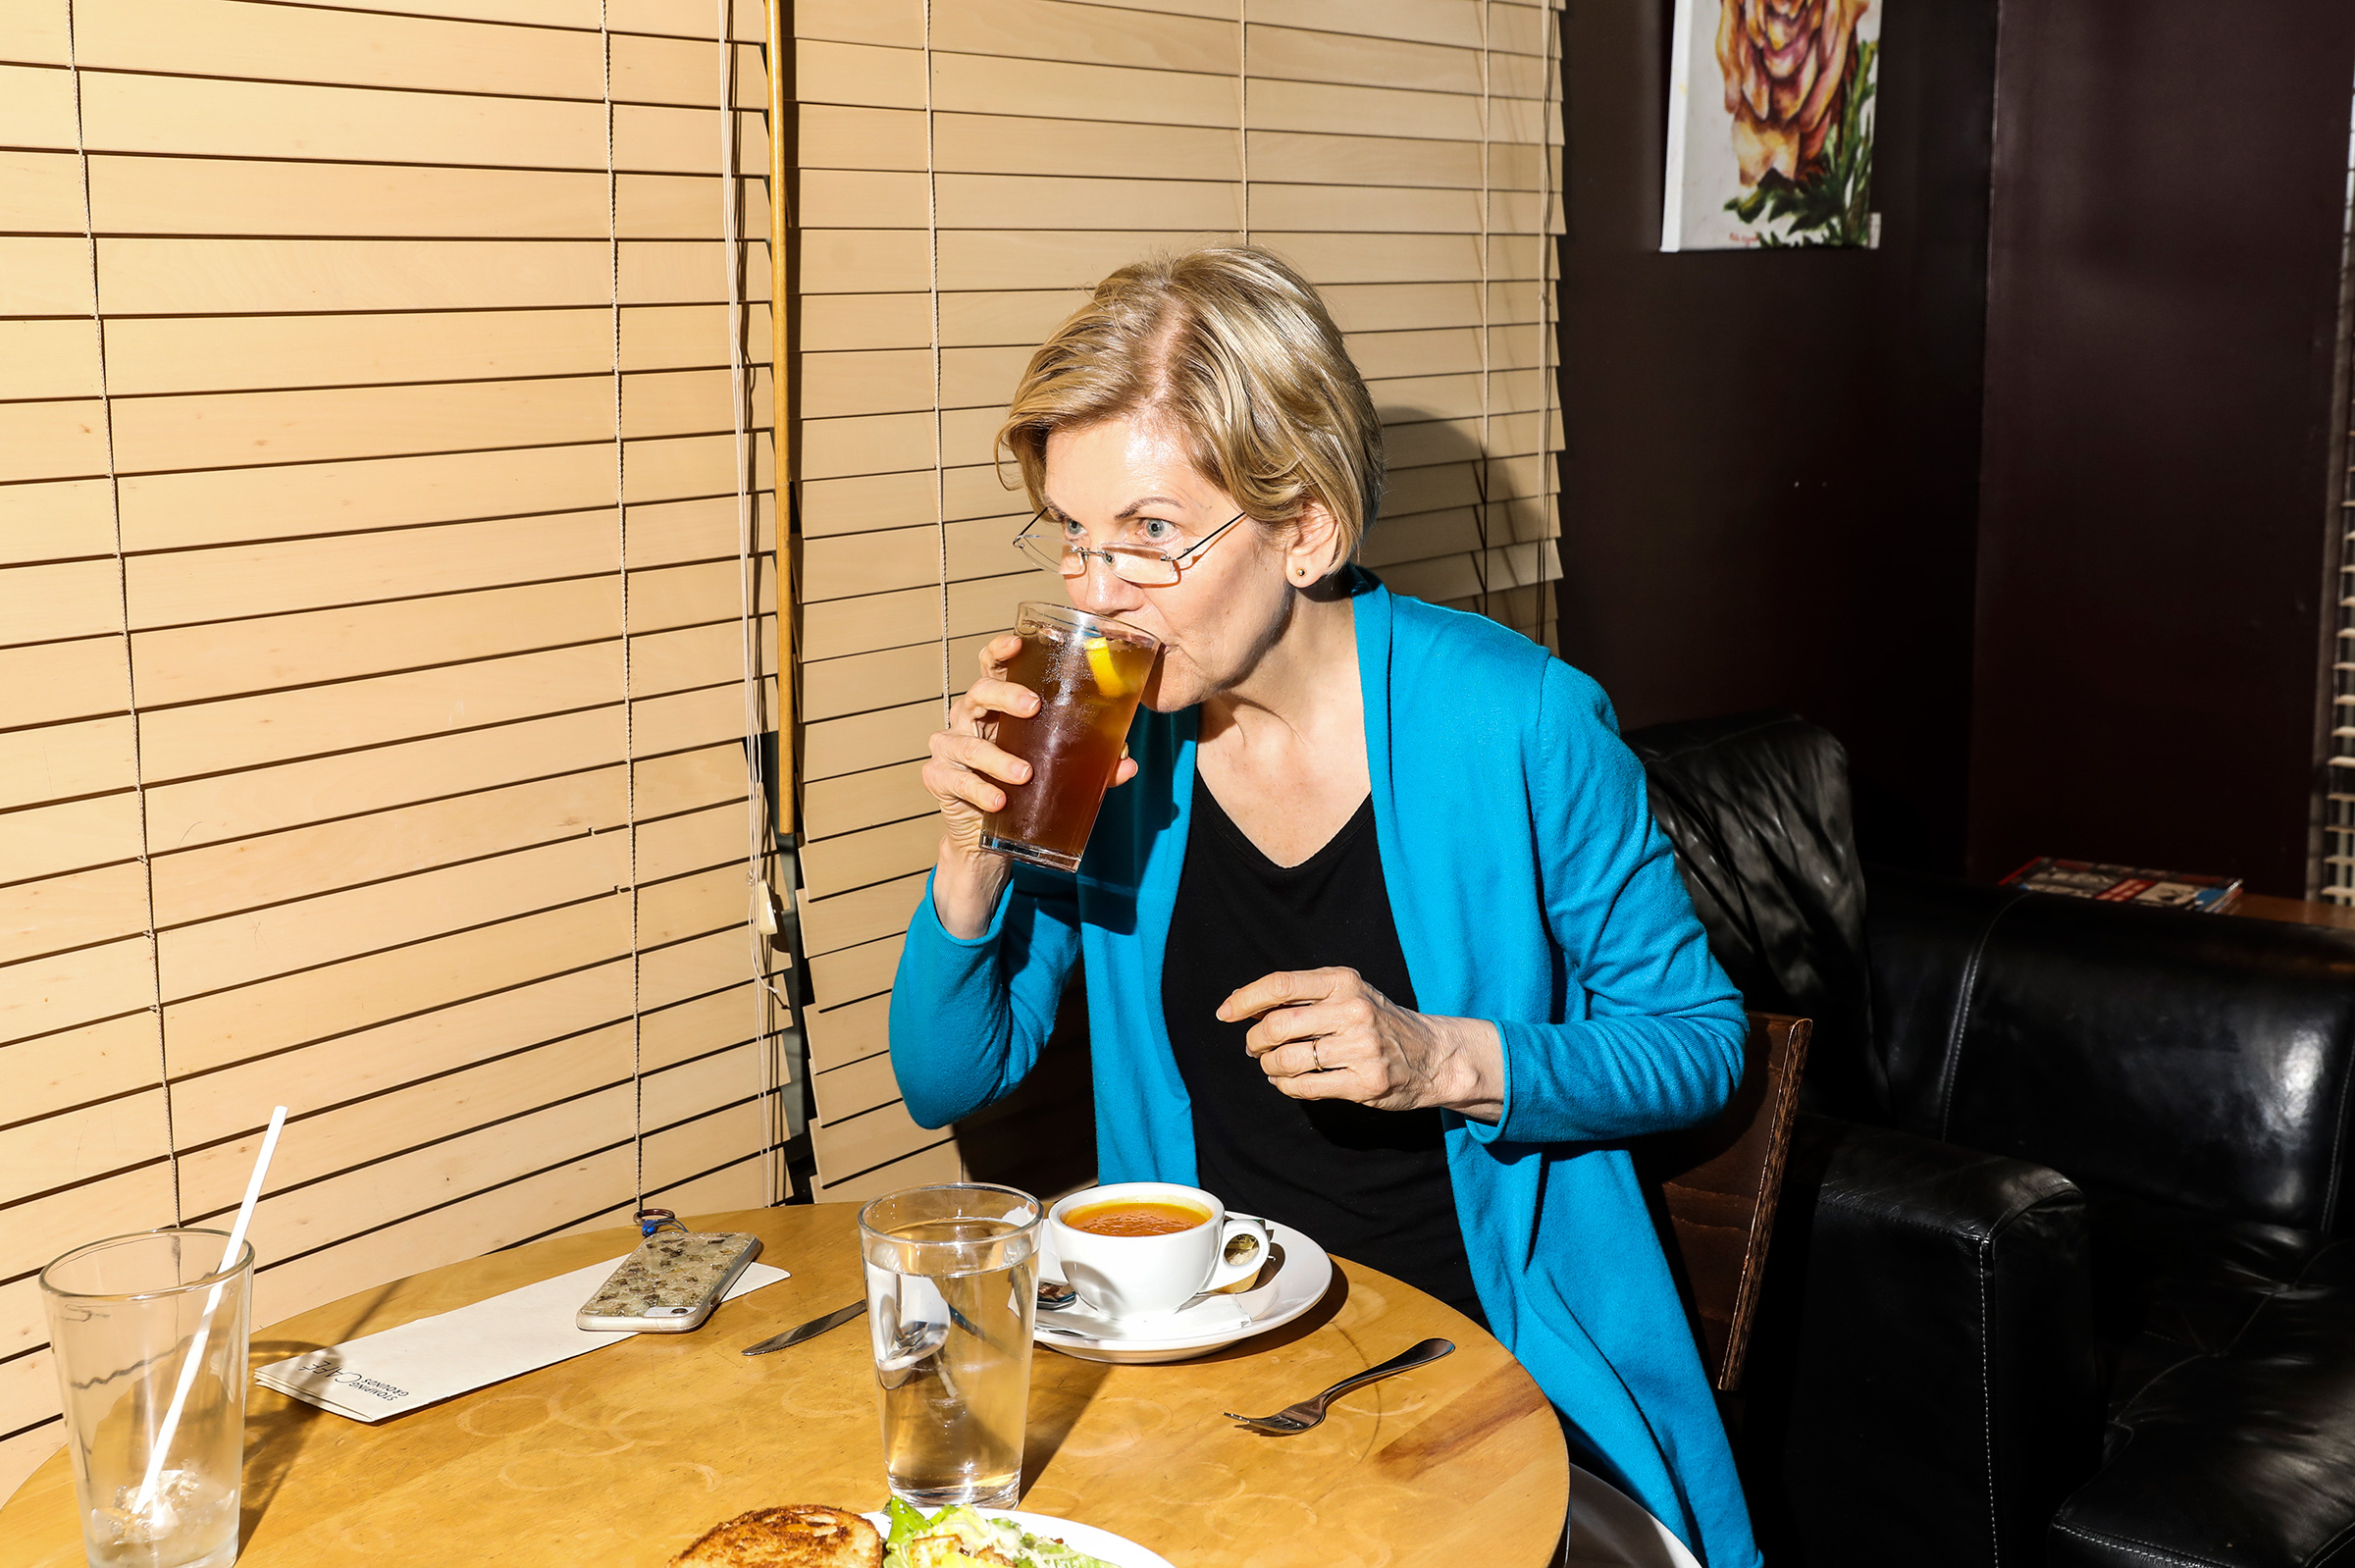 Warren breaks for lunch between campaign events at the Stomping Grounds Cafe in Ames, Iowa.